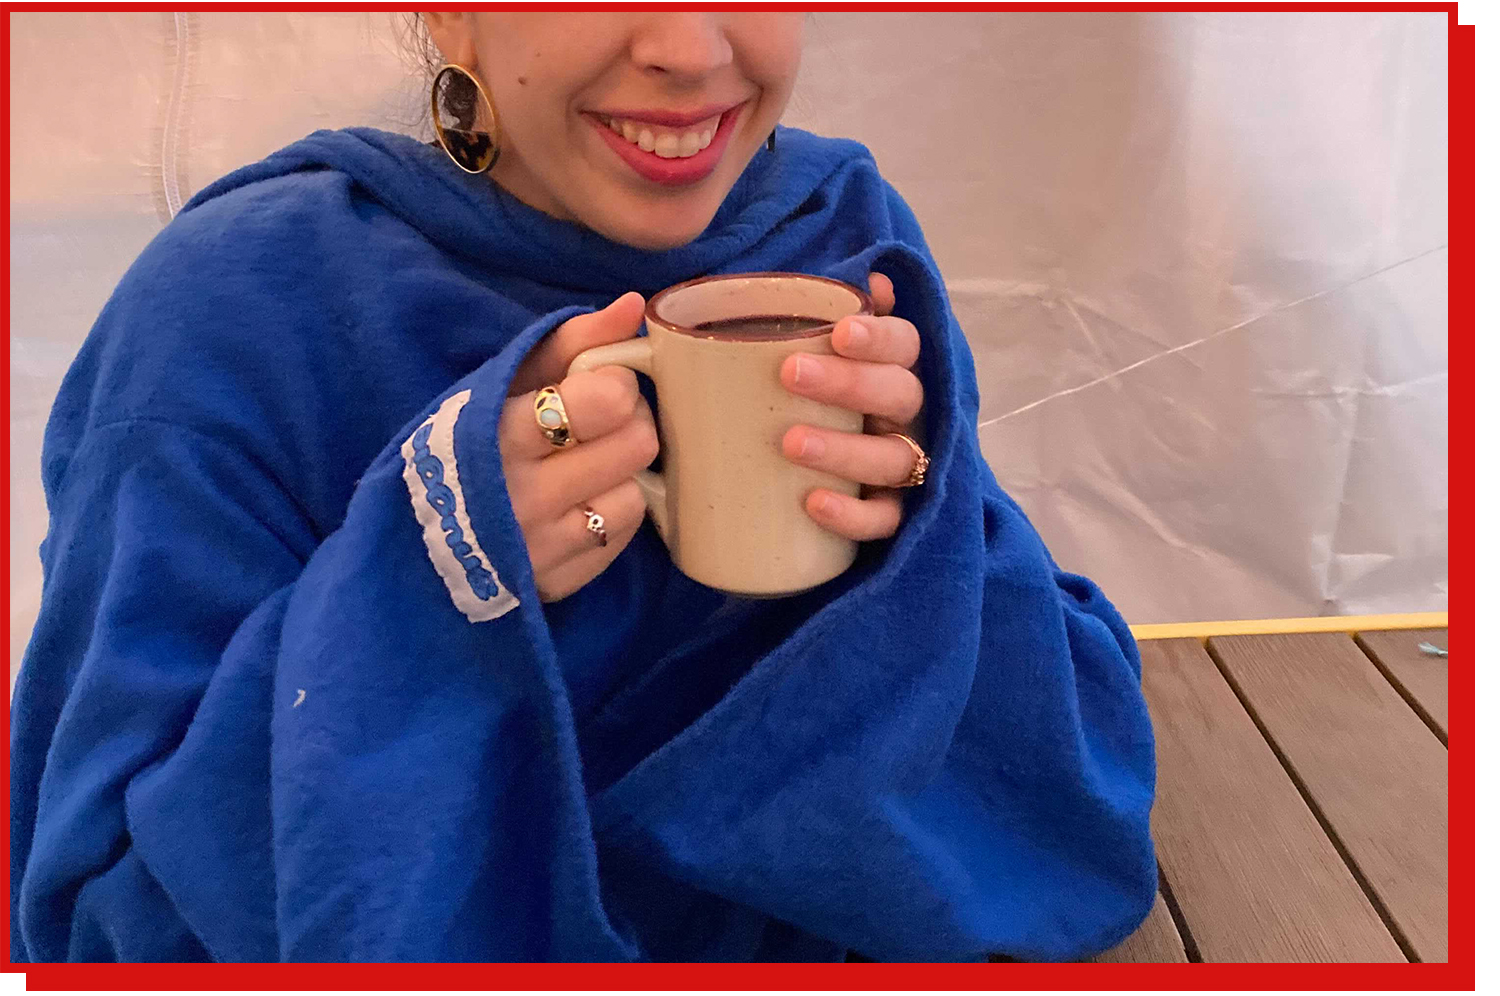 Smiling woman wearing blue Snuggie holding a mug containing a warm beverage.